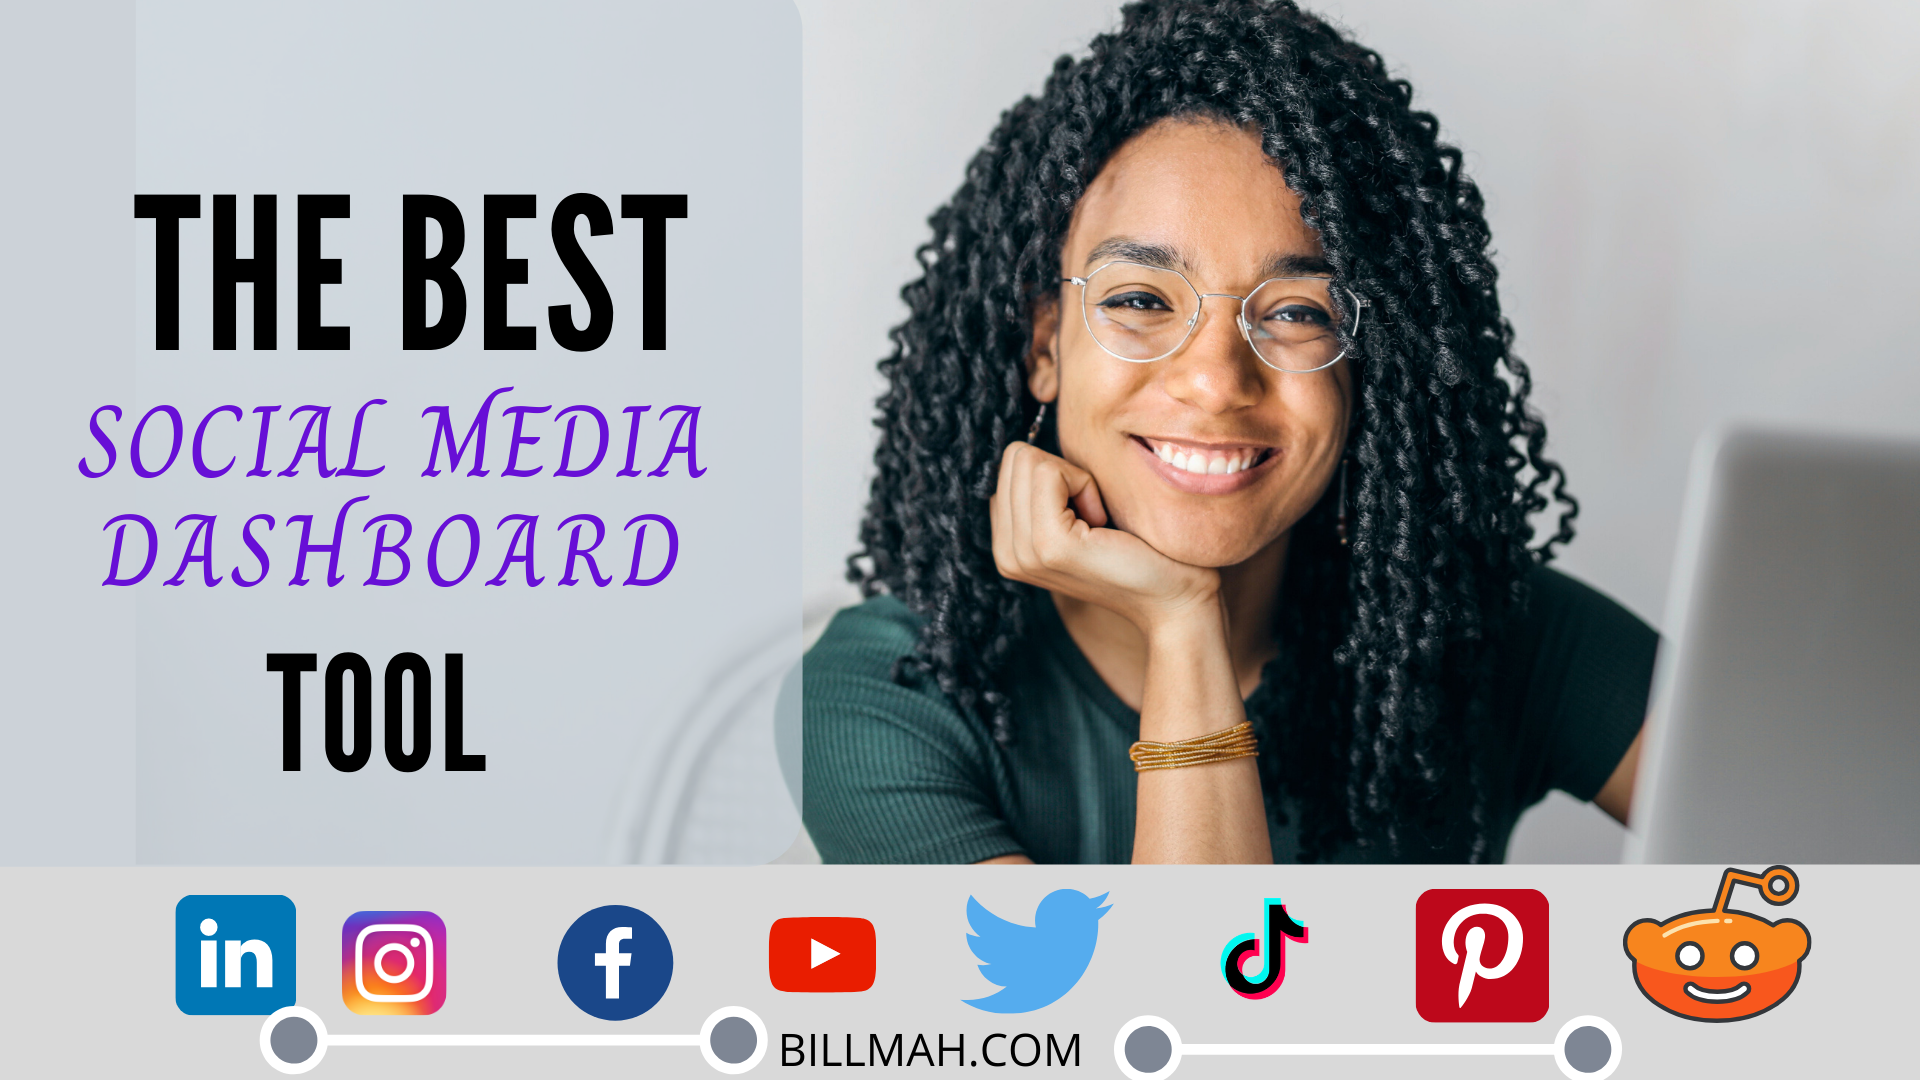 THE BEST SOCIAL MEDIA TOOL FOR 2020